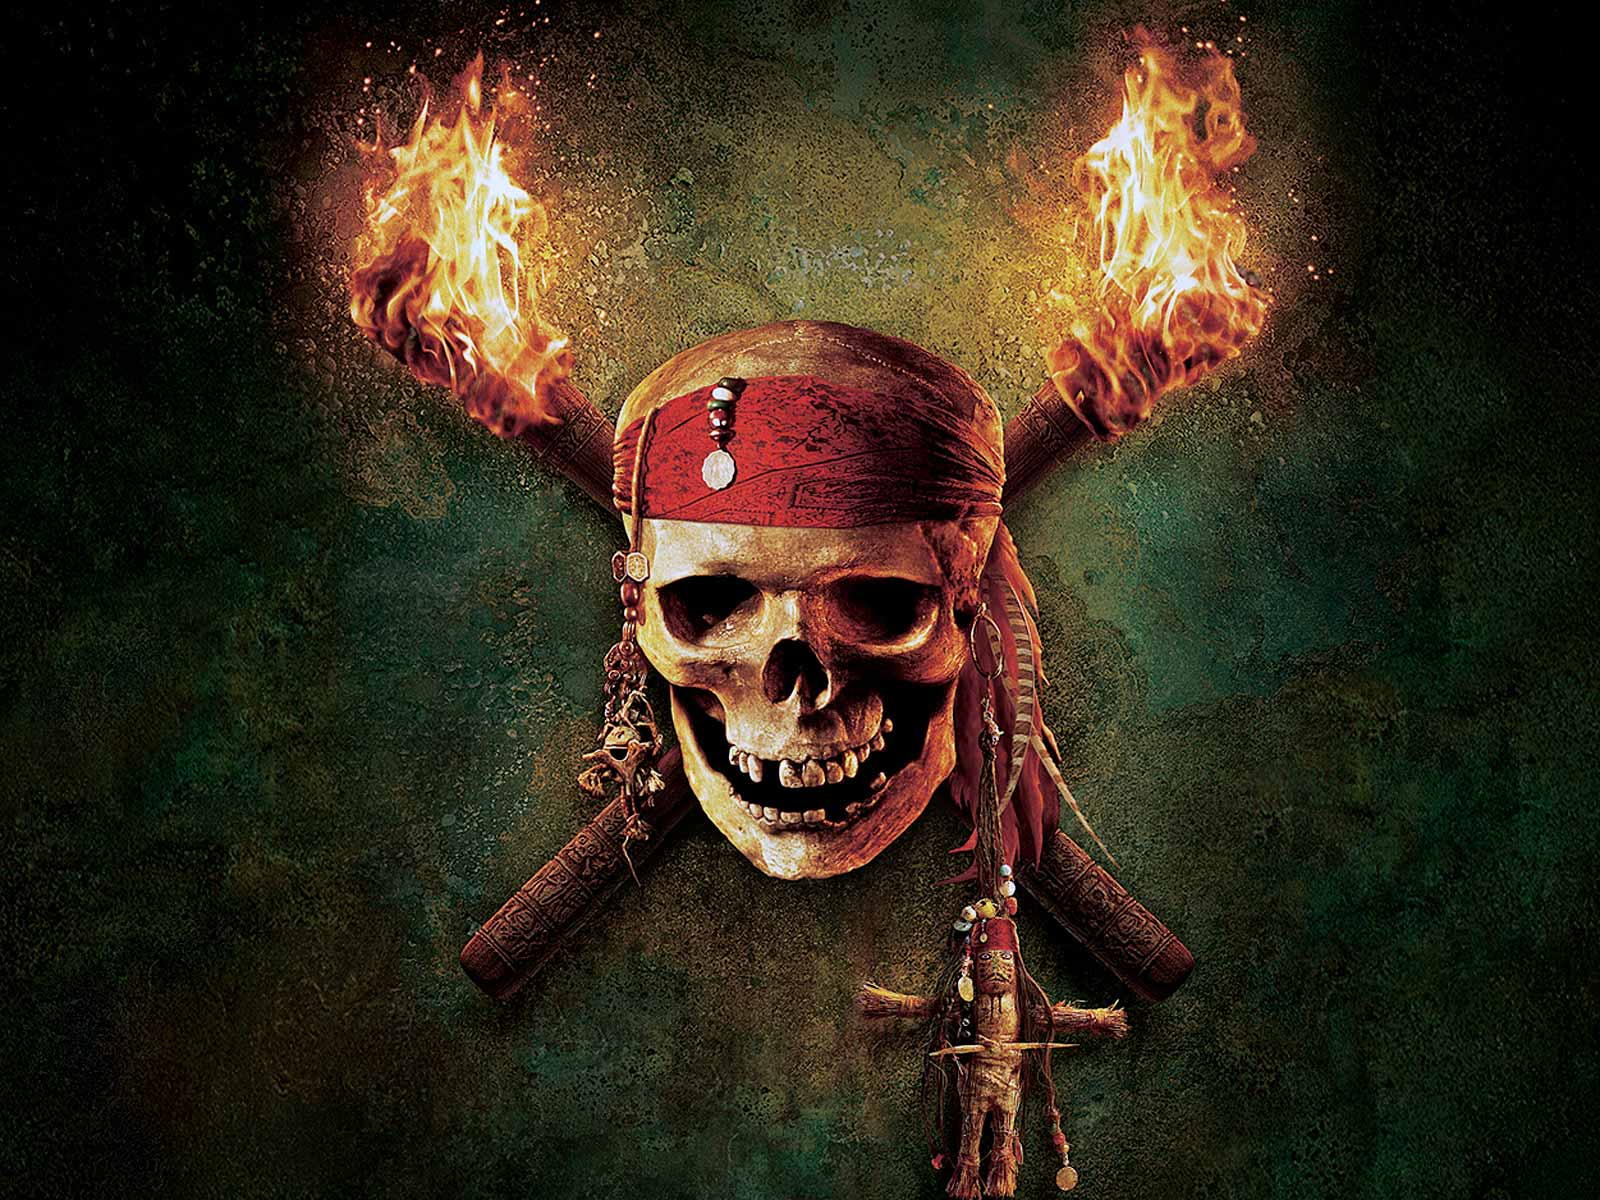 Pirates Of The Caribean Wallpaper: COOL WALLPAPERS: Pirates Of The Caribbean 4